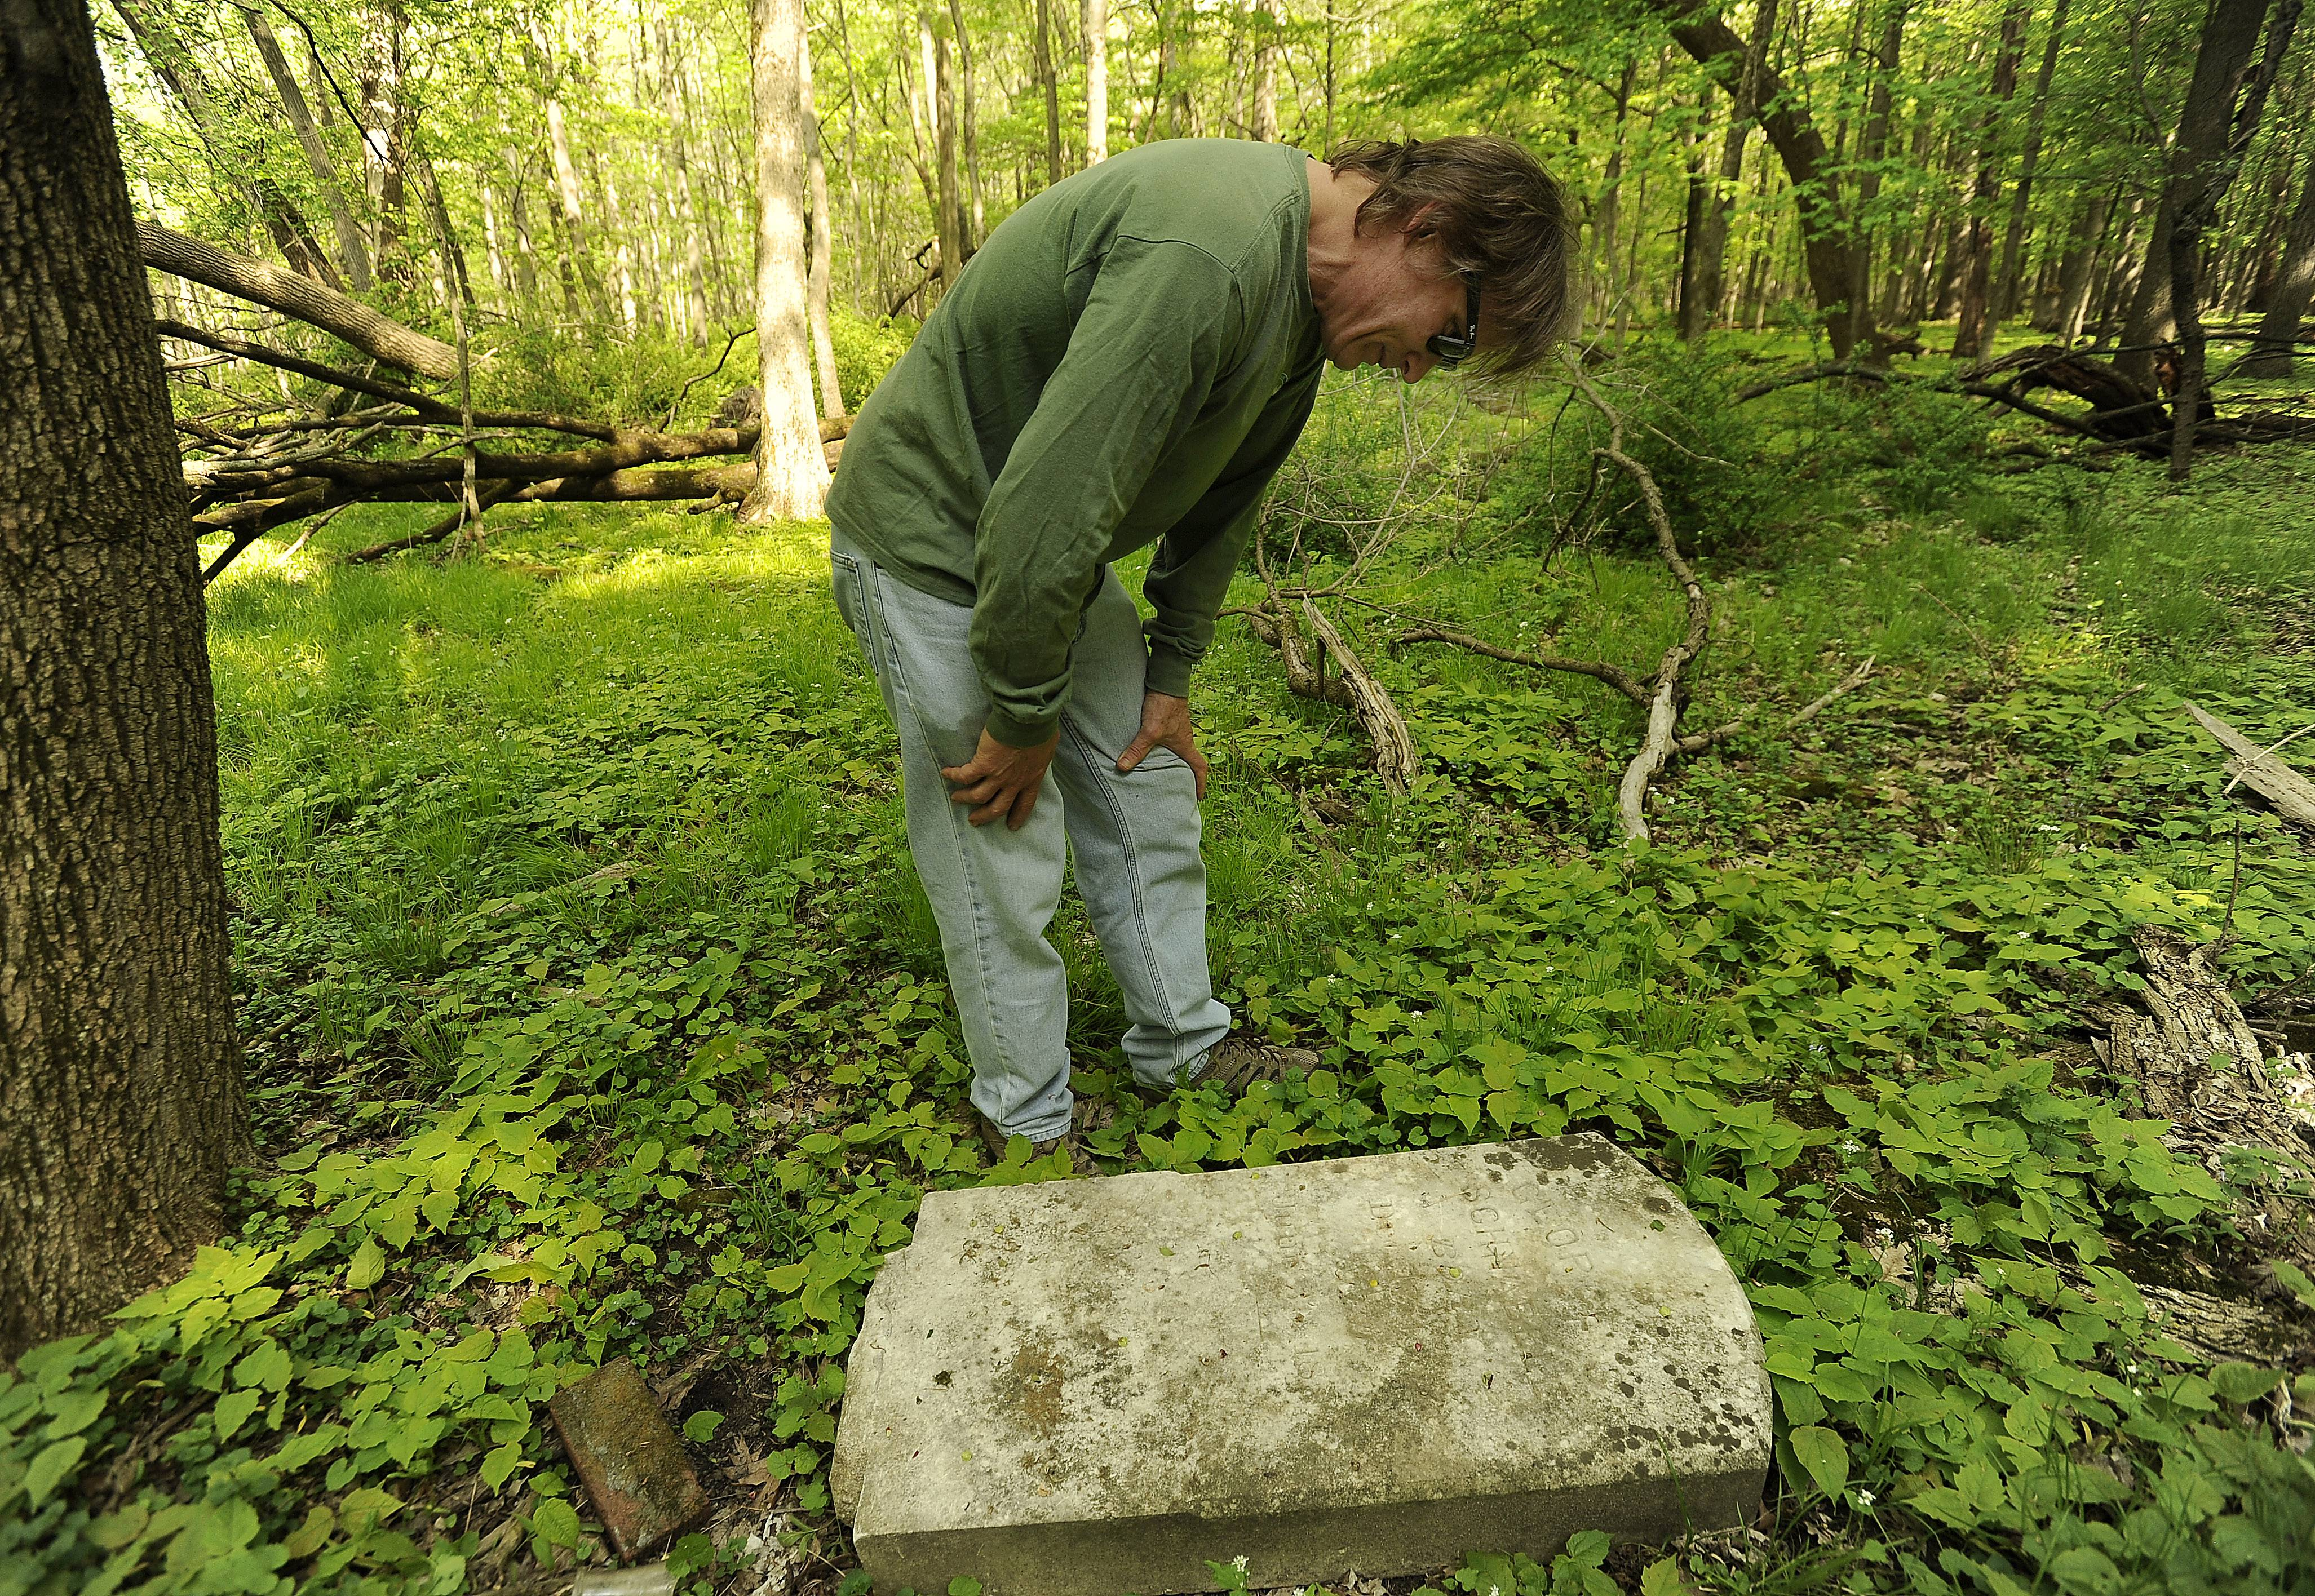 Joel Schauer, of Hawthorn Woods, checks out the tombstone of George S. Schnabele that he stumbled across one day as he and his family were out bird watching. His mission was to return the tombstone to its original resting spot and he was surprised to find that this was the final resting place.